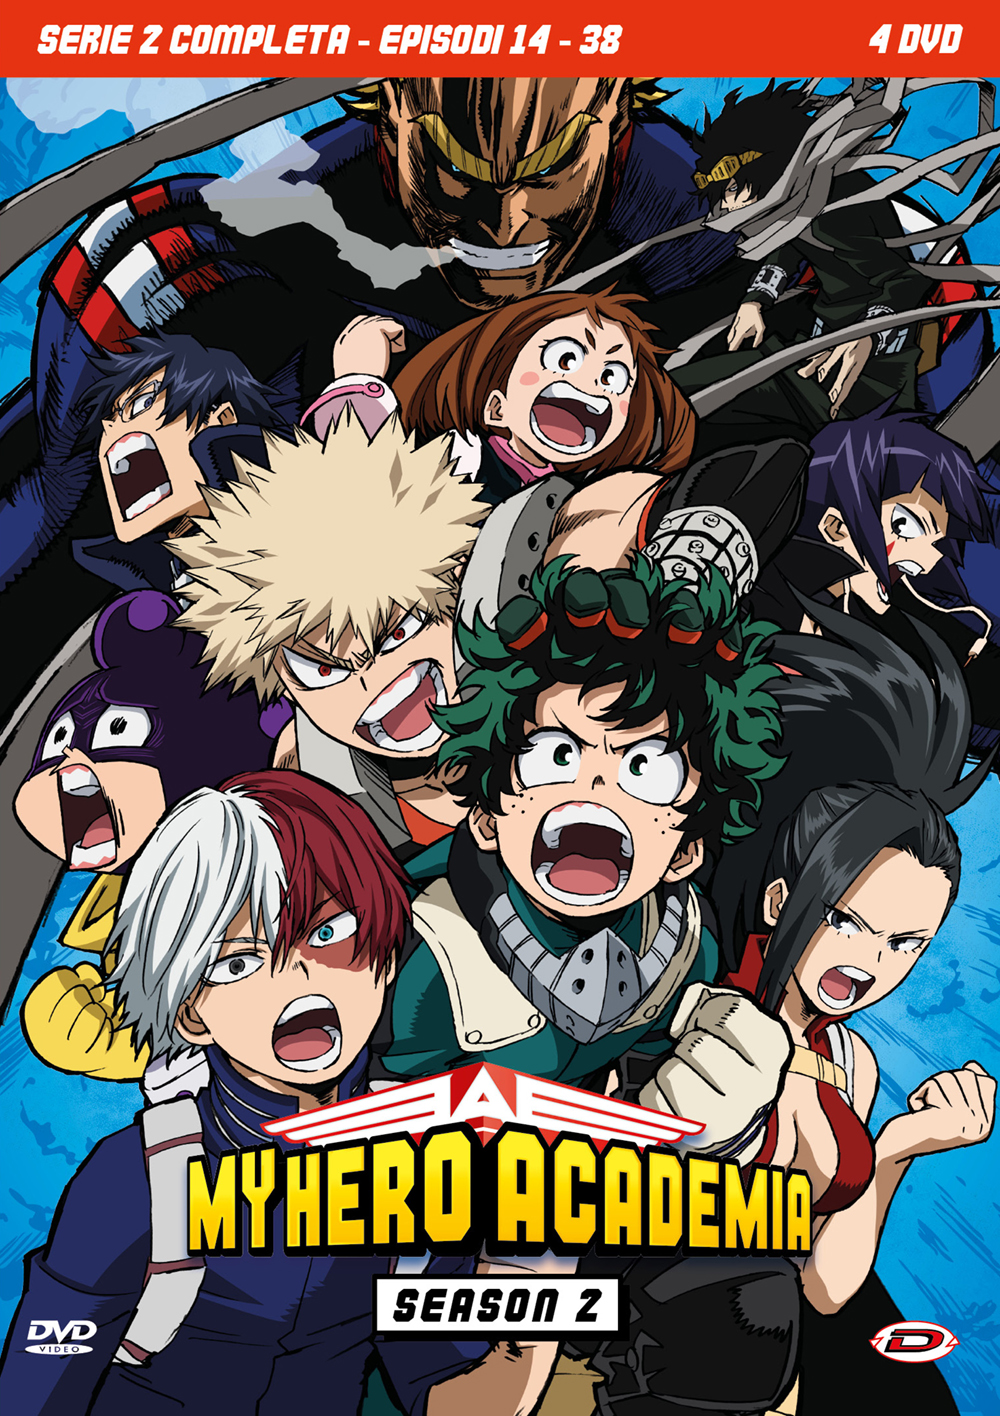 COF.MY HERO ACADEMIA - STAGIONE 02 THE COMPLETE SERIES (EPS 14-3